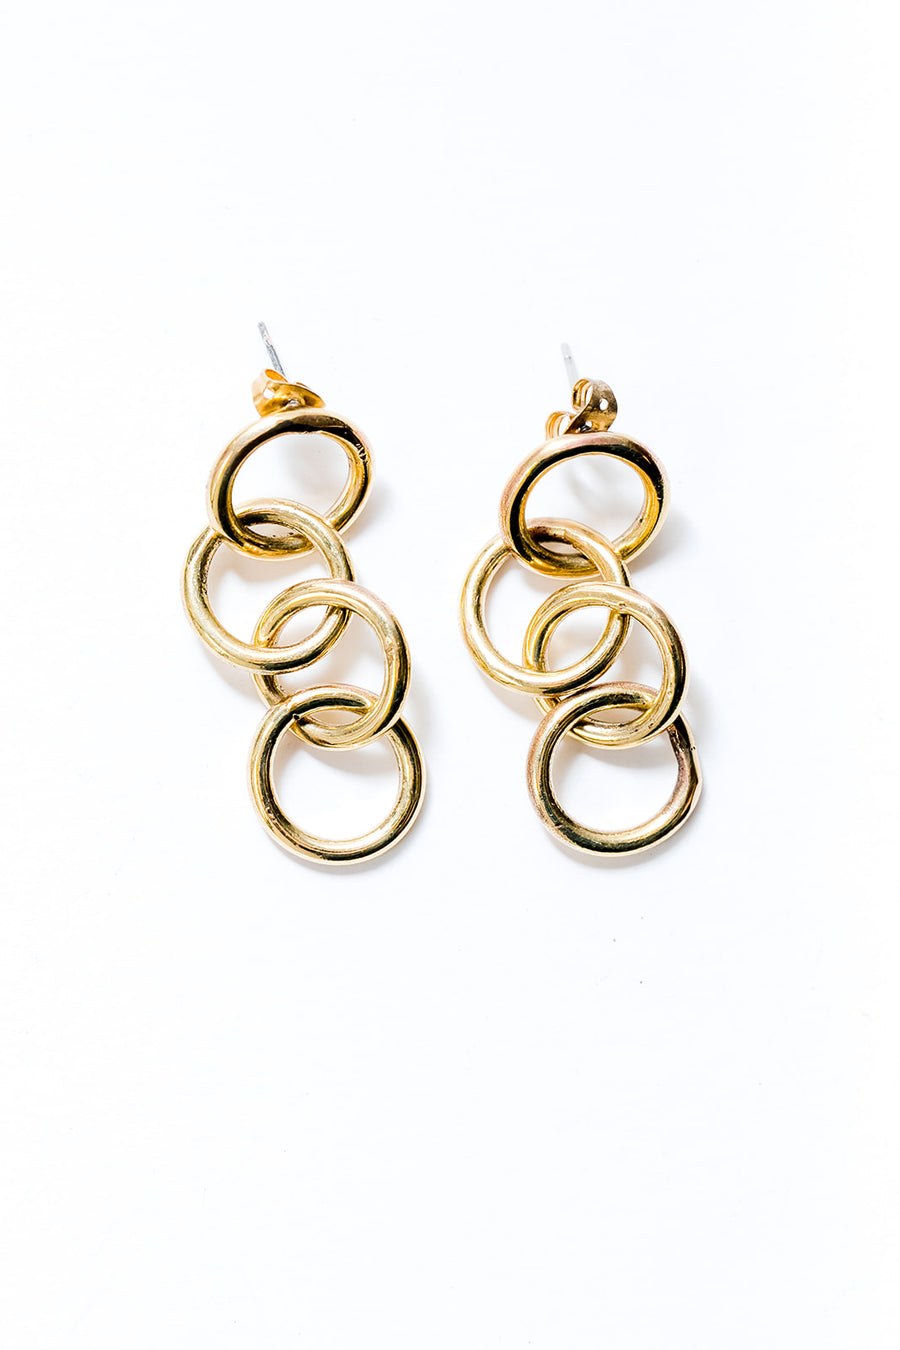 Demi circle link earrings